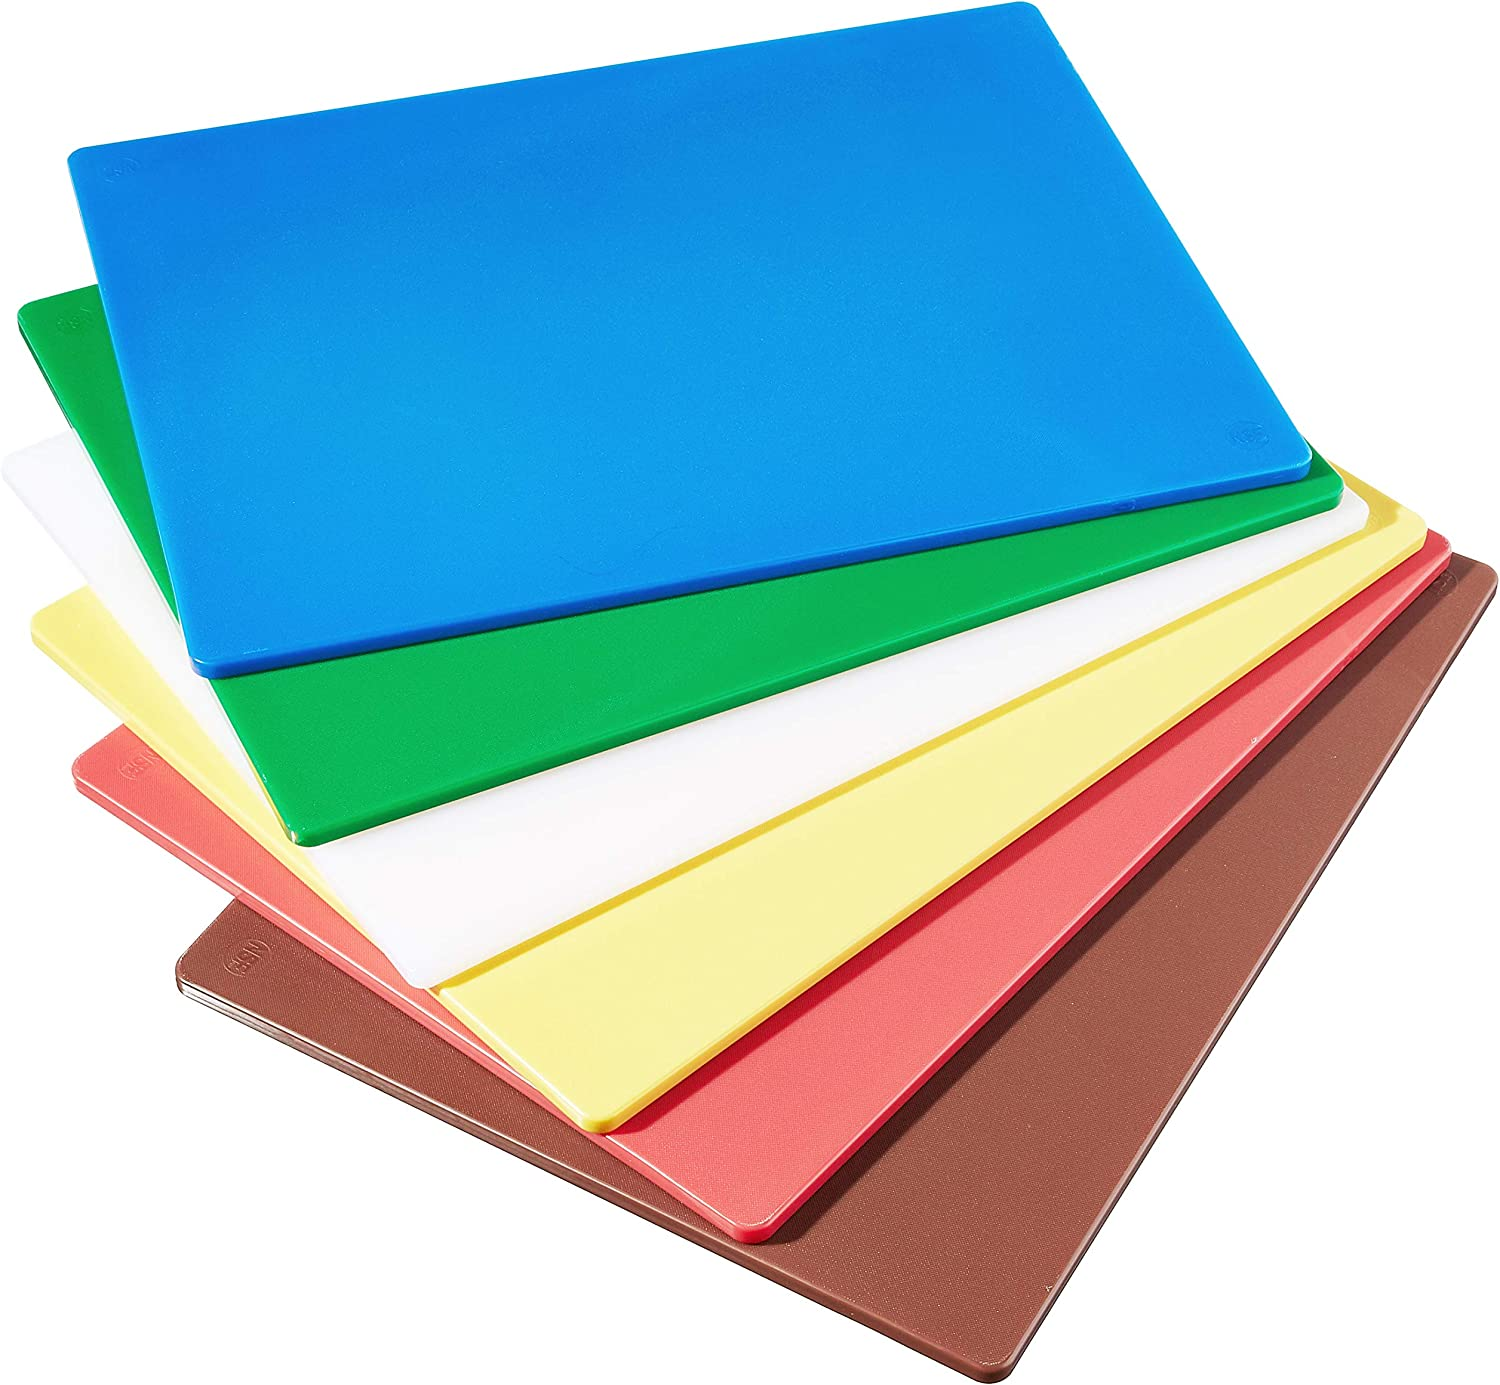 Winco CBST-1824 Cutting Board Set, 18-Inch by 24-Inch by 1/2-Inch, Assorted Colors